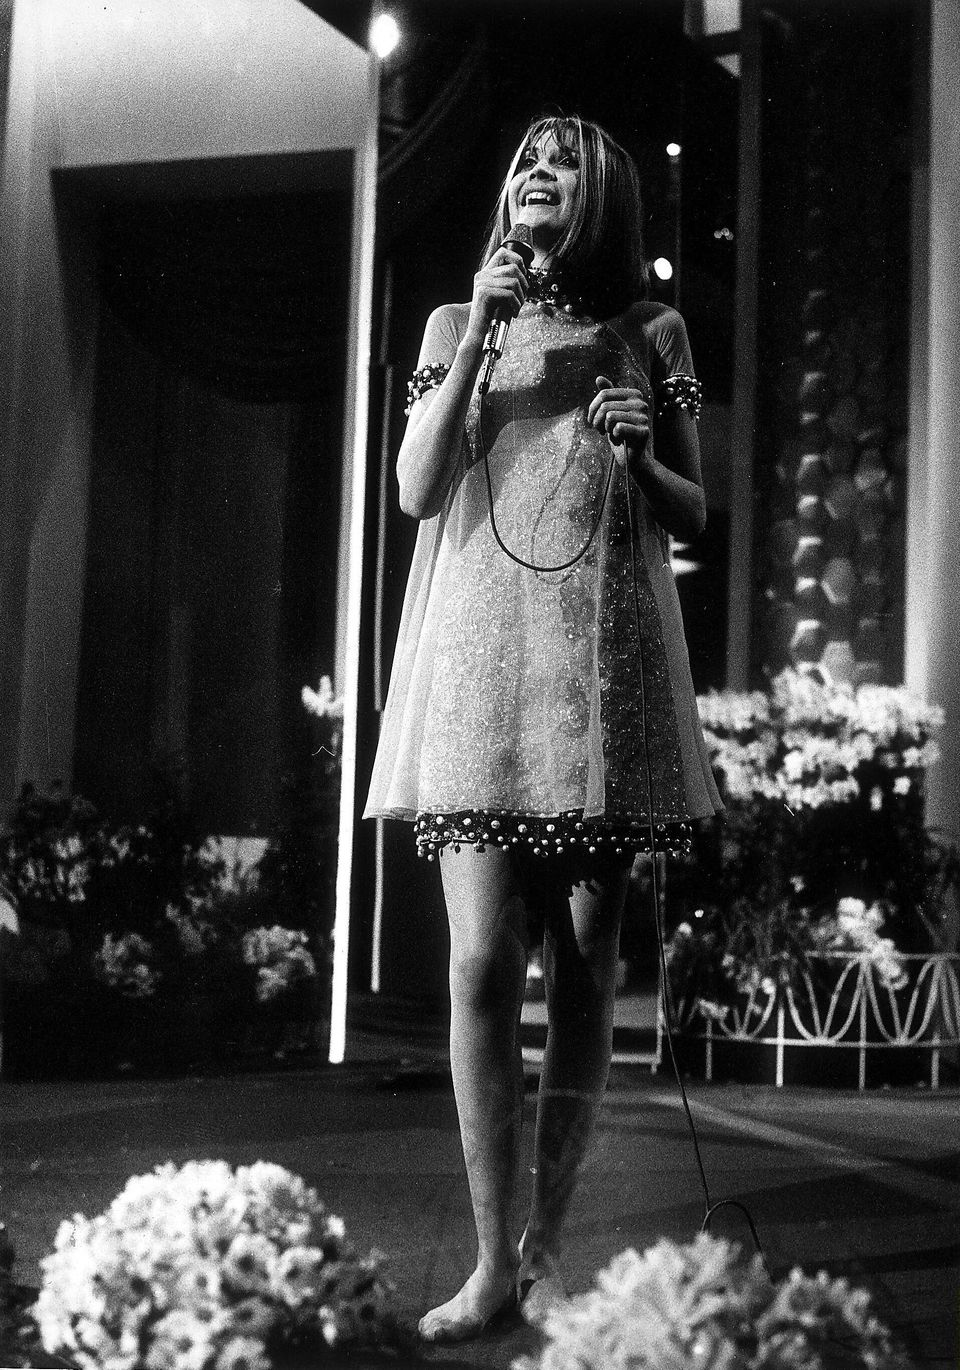 Sandie Shaw performing Puppet On A String in